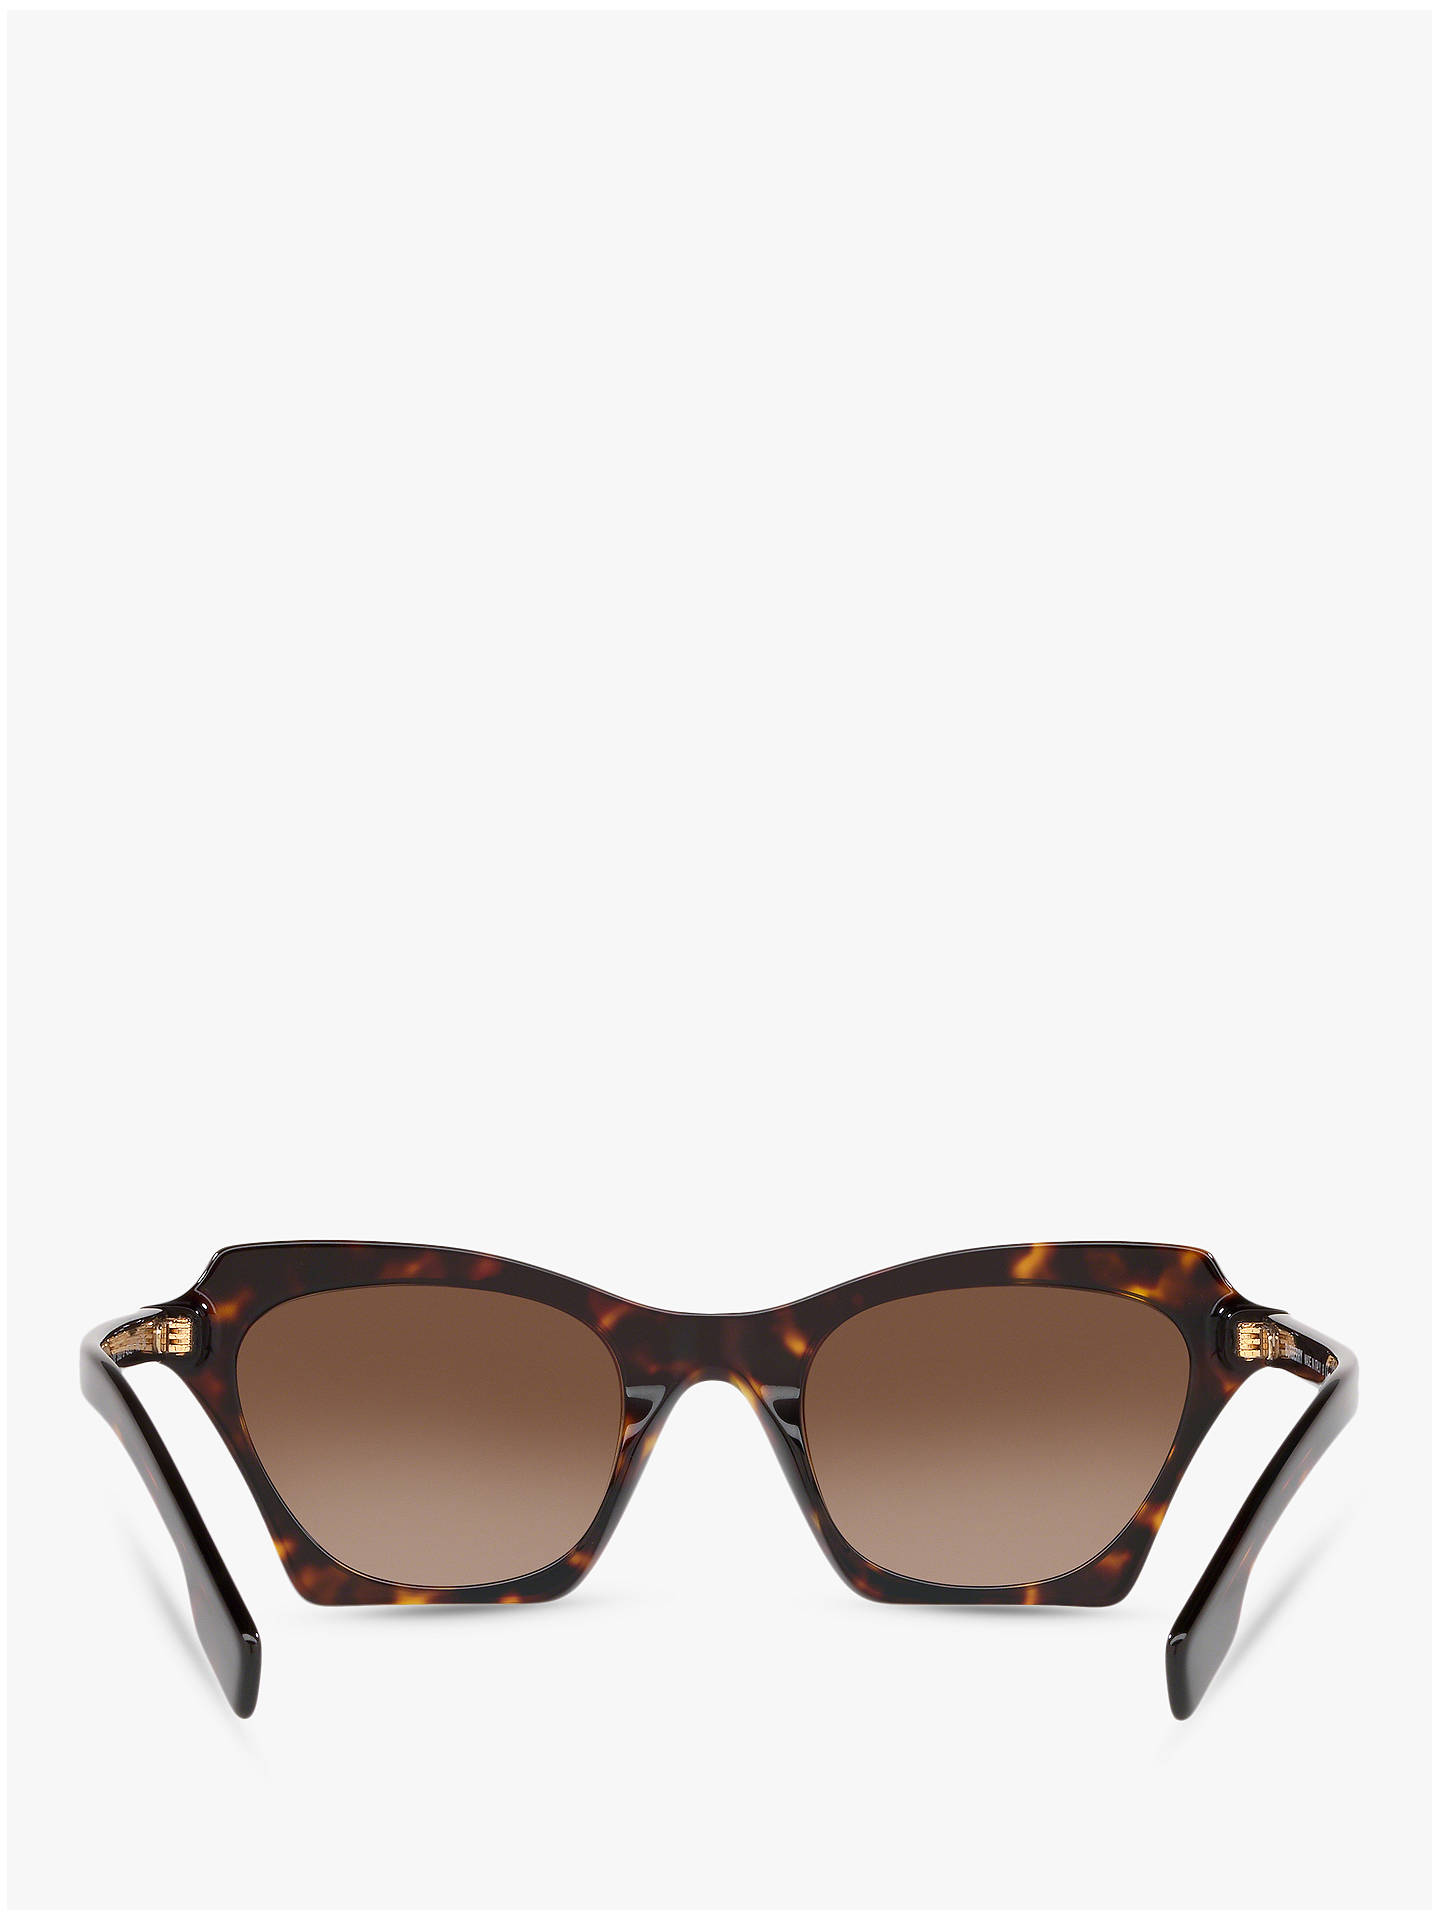 325be6a768ae ... Buy Burberry BE4283 Women s Square Sunglasses